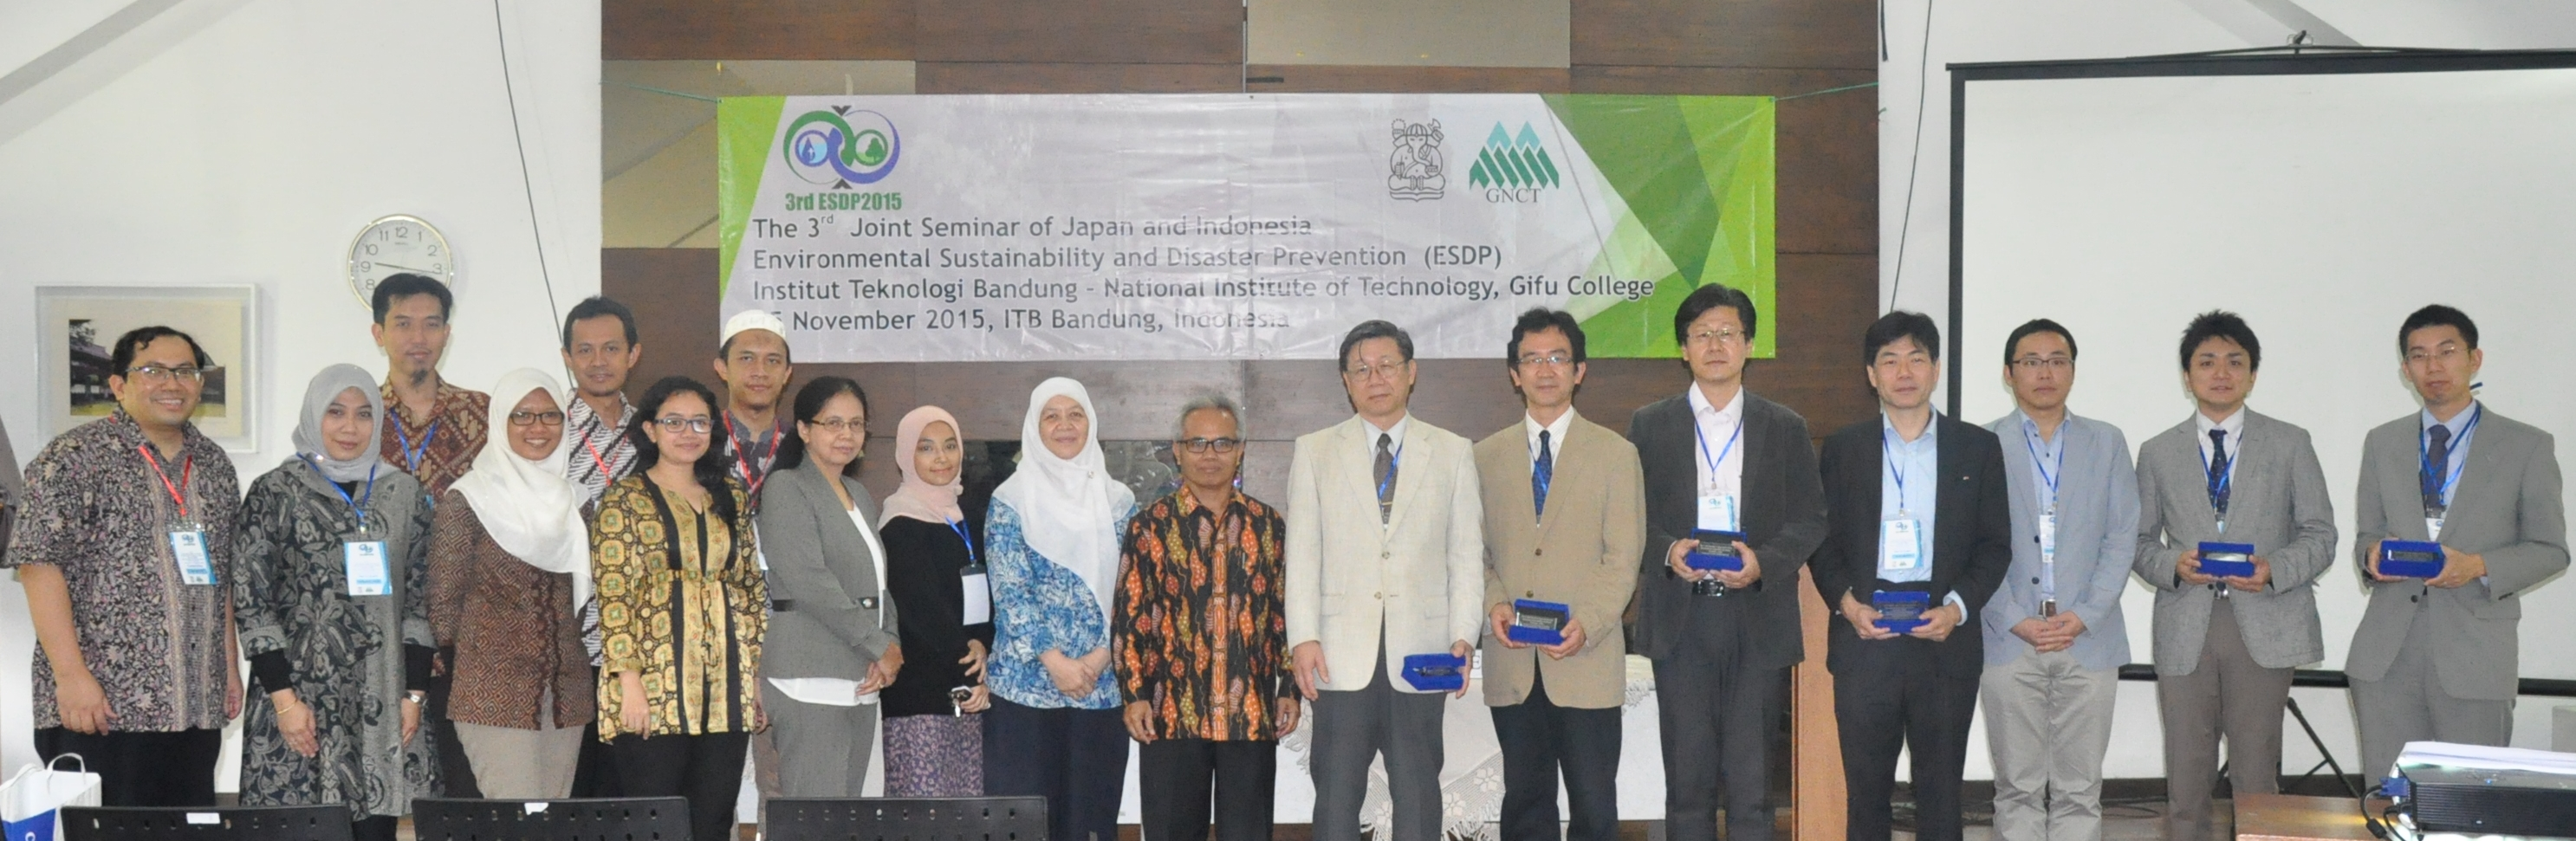 Environmental Sustainability and Disaster Prevention